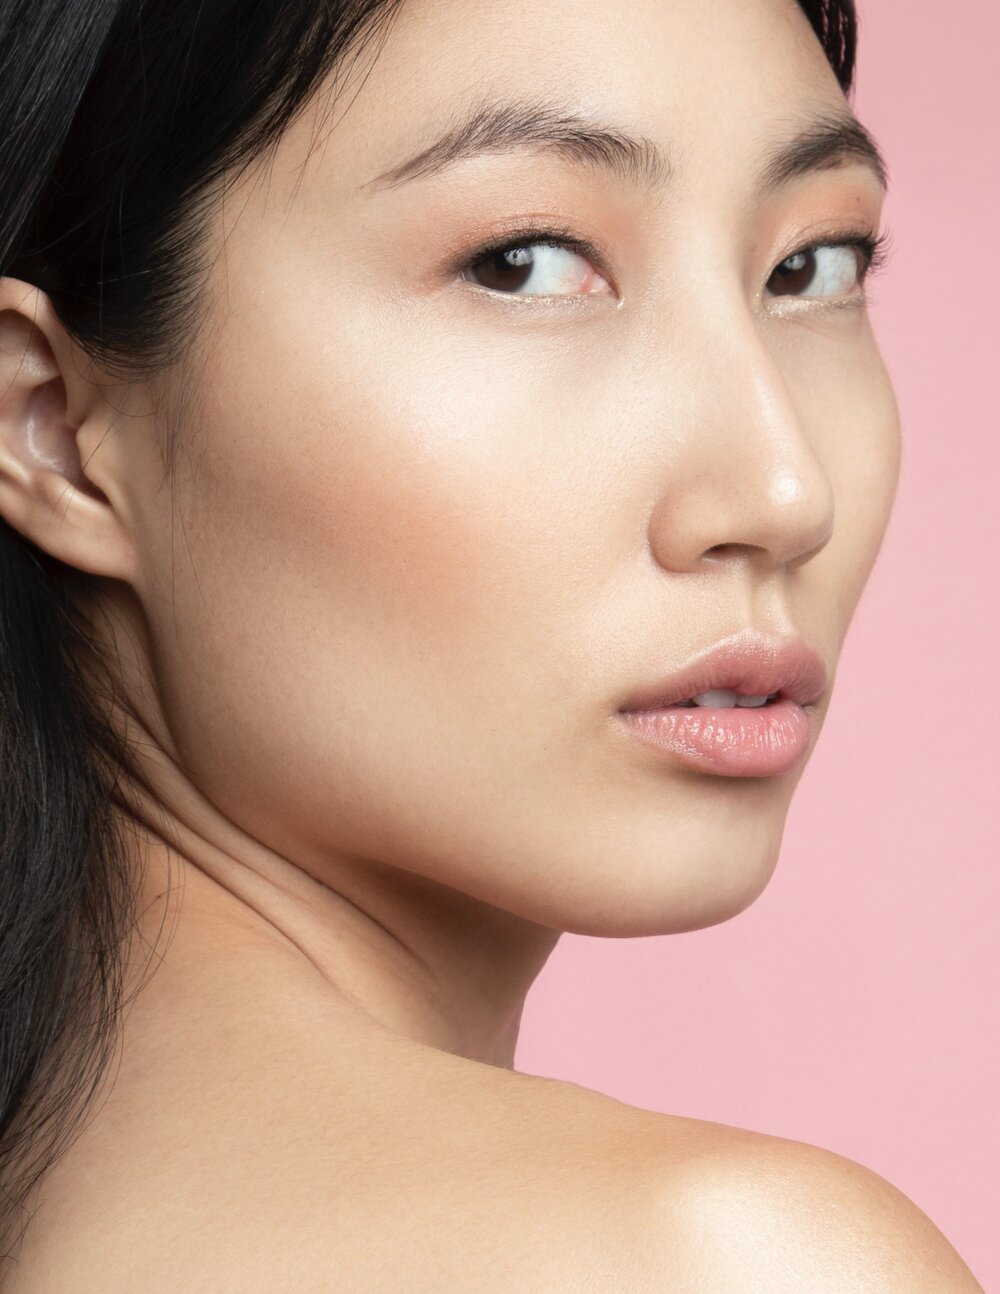 April_Staso_Los Angeles_beauty_Photography_LA_beauty_Photographer_Los angeles_fashion_Photographer_pink_asian_model_09.jpg